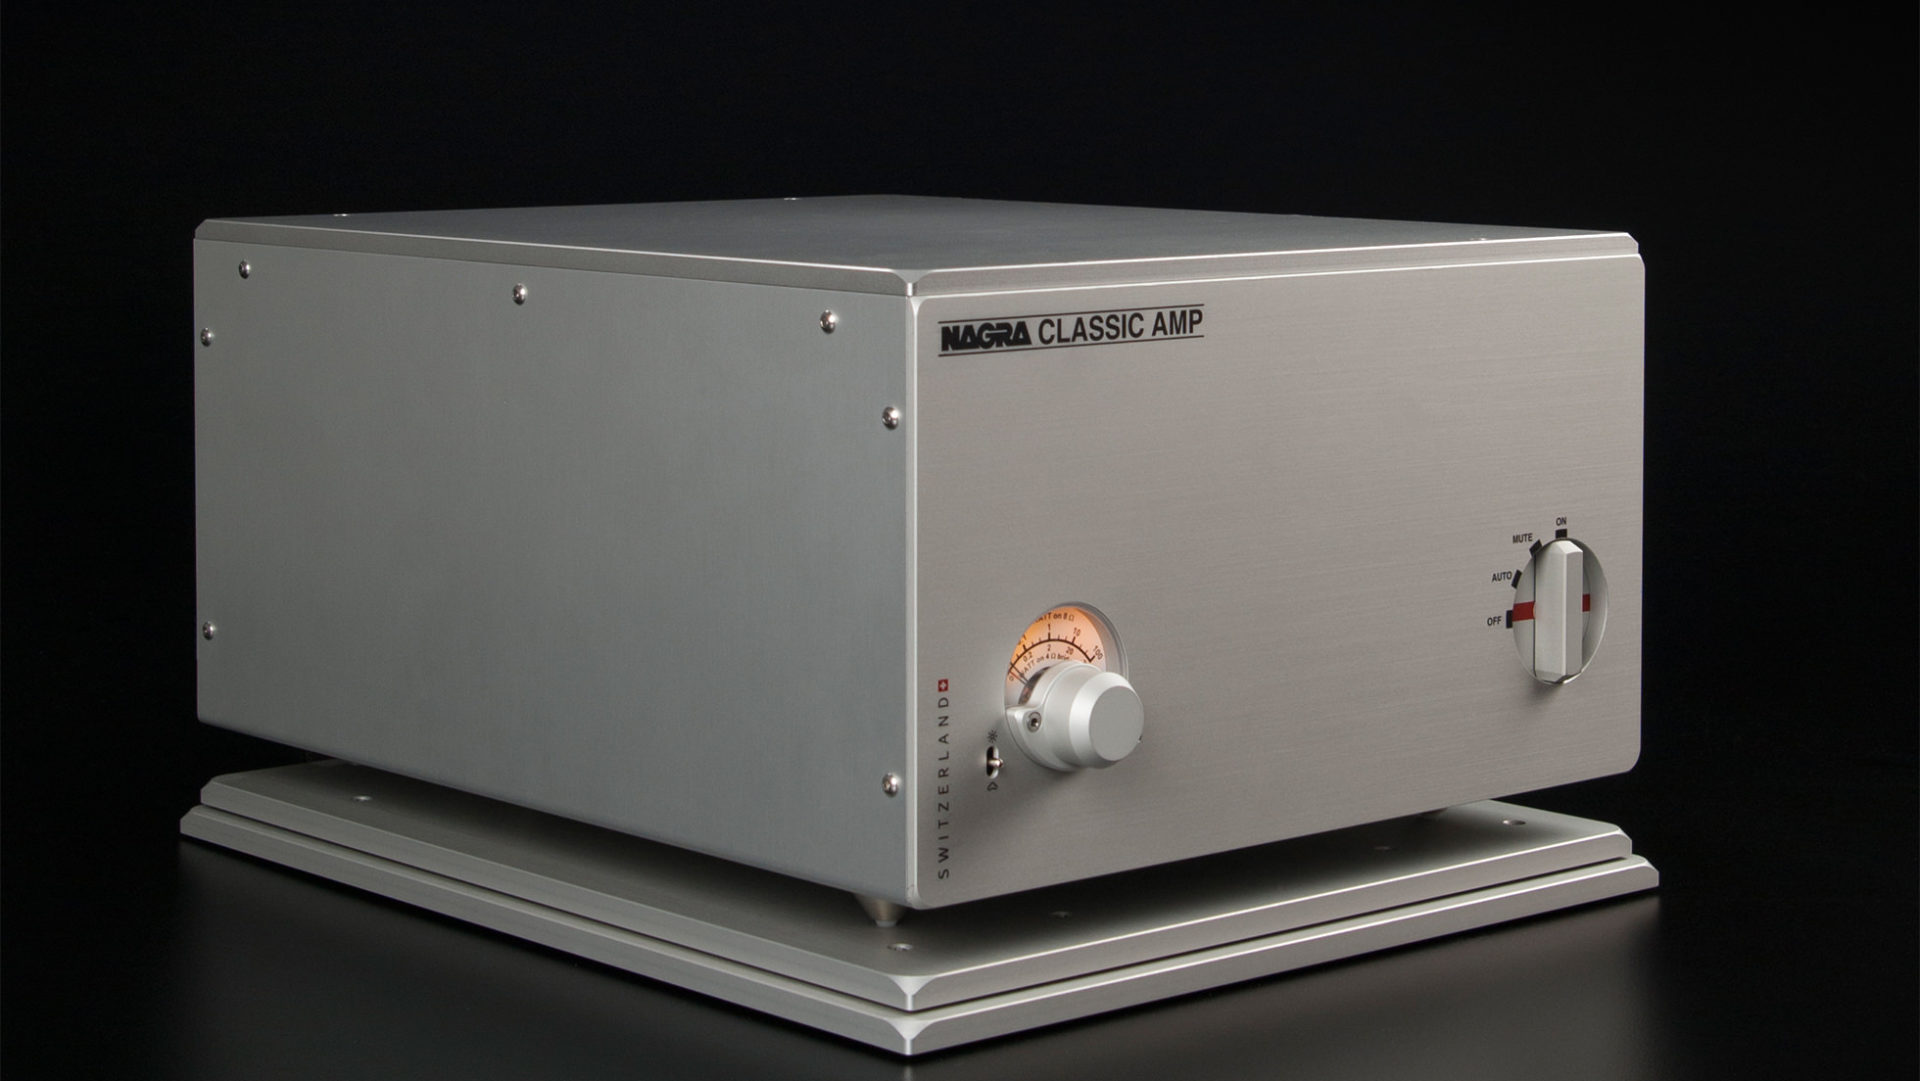 Nagra classic AMP modulo best high end amplifier front vfs